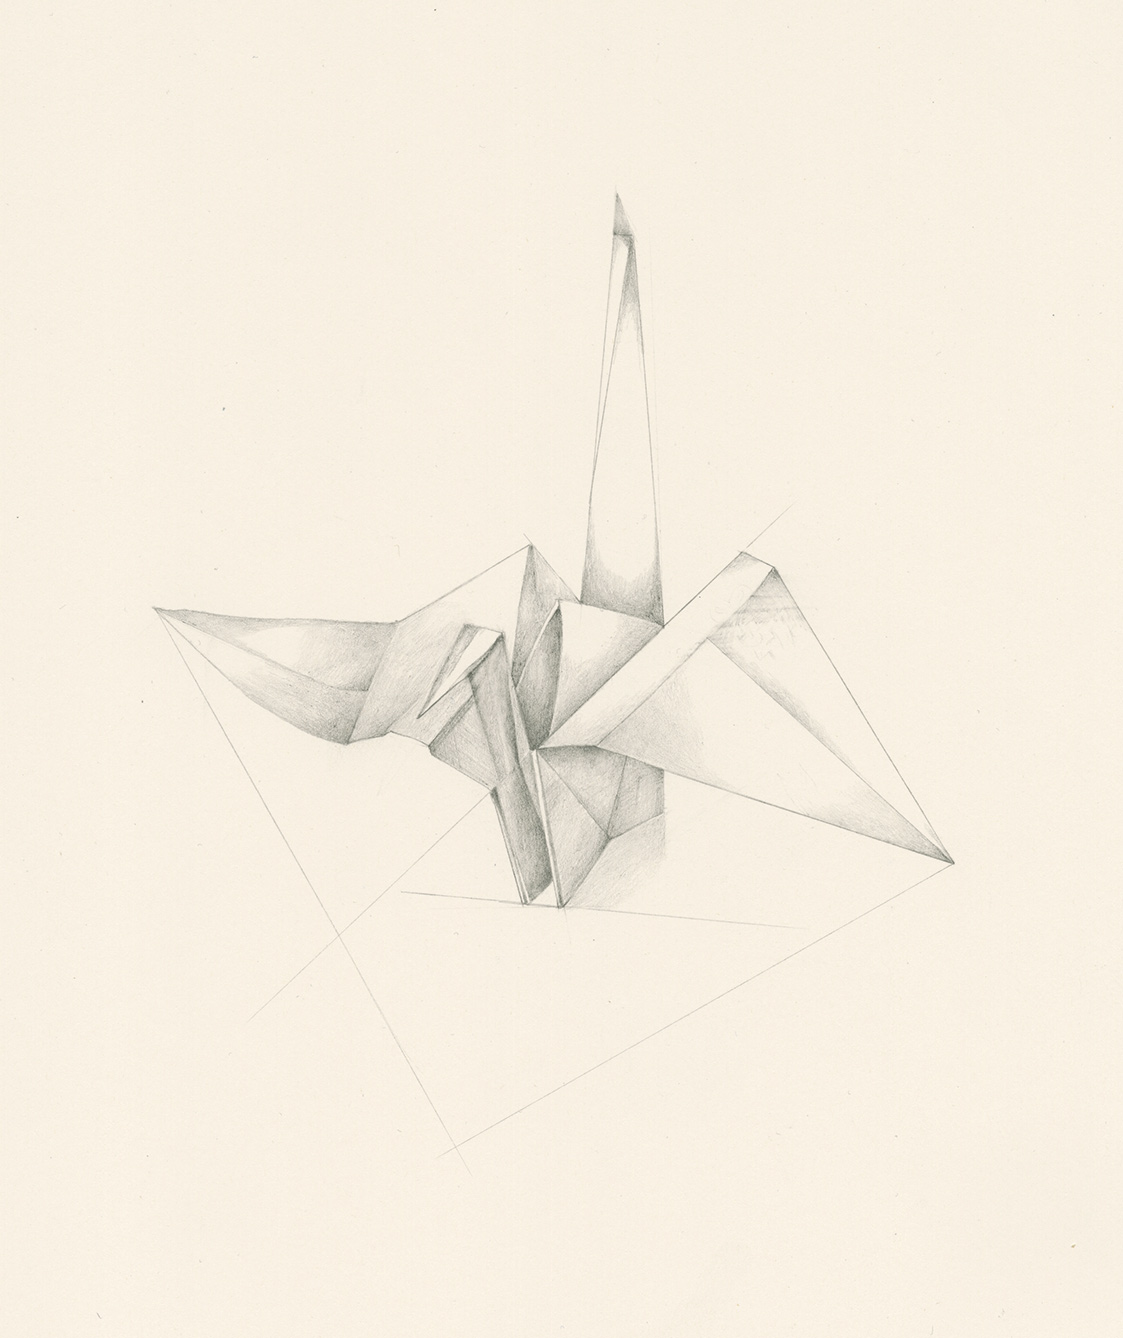 Origami crane pencil drawing by Iskra